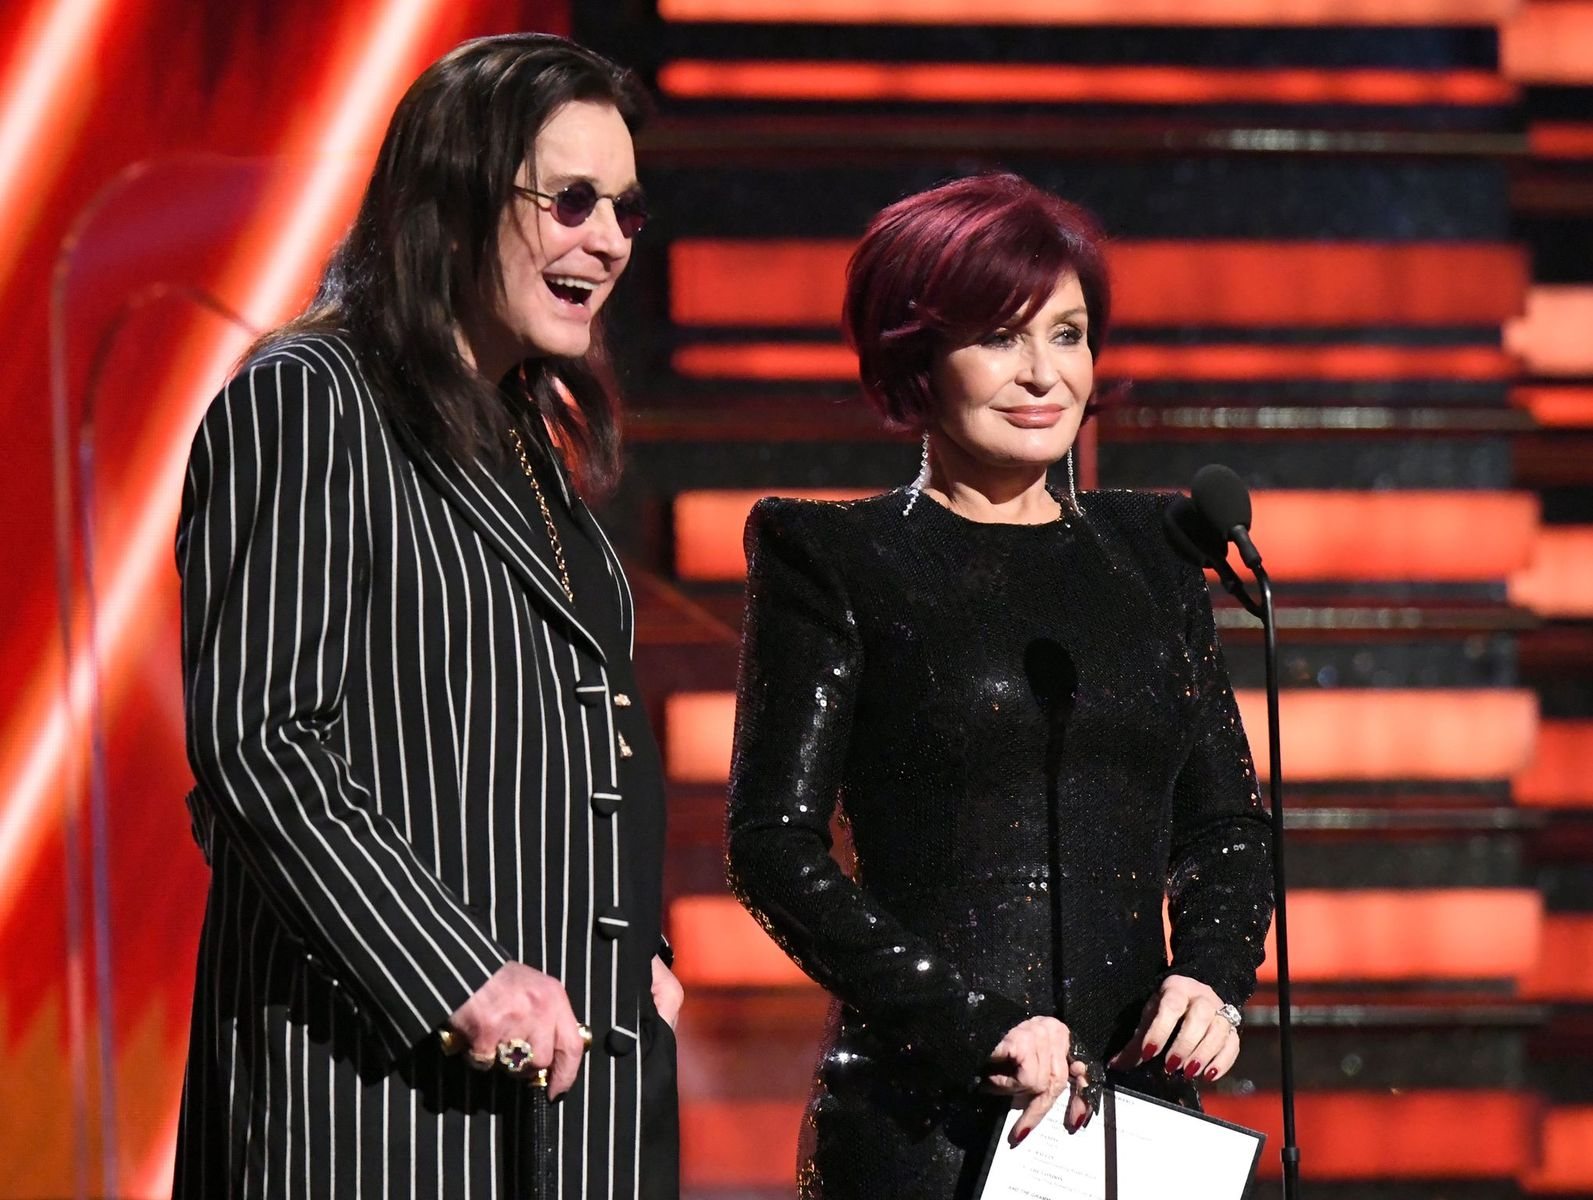 Ozzyand Sharon Osbourne speak onstage during the 62nd Annual Grammy Awards on January 26, 2020, in Los Angeles, California | Photo:Jeff Kravitz/FilmMagic/Getty Images